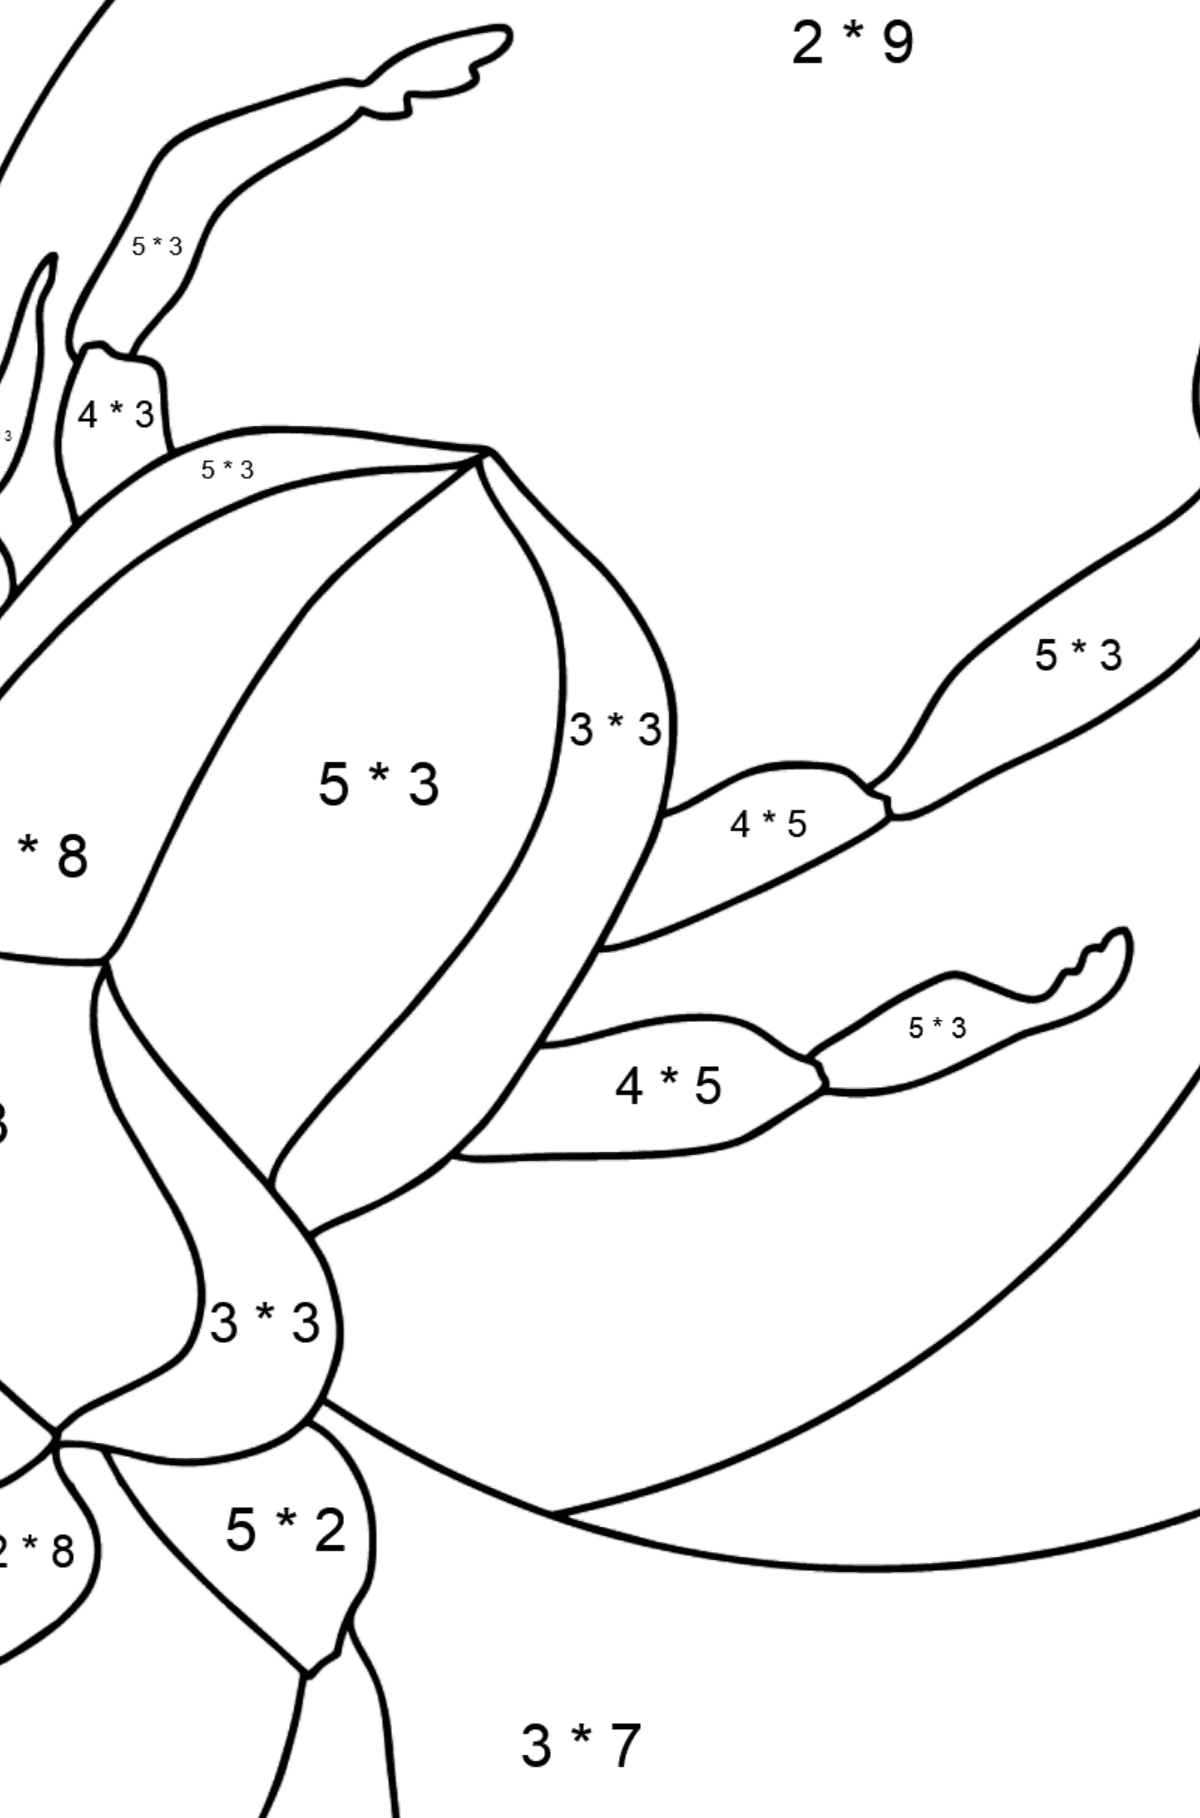 Coloring Page - A Scarab Beetle or a Symbol of Renewal - Math Coloring - Multiplication for Kids